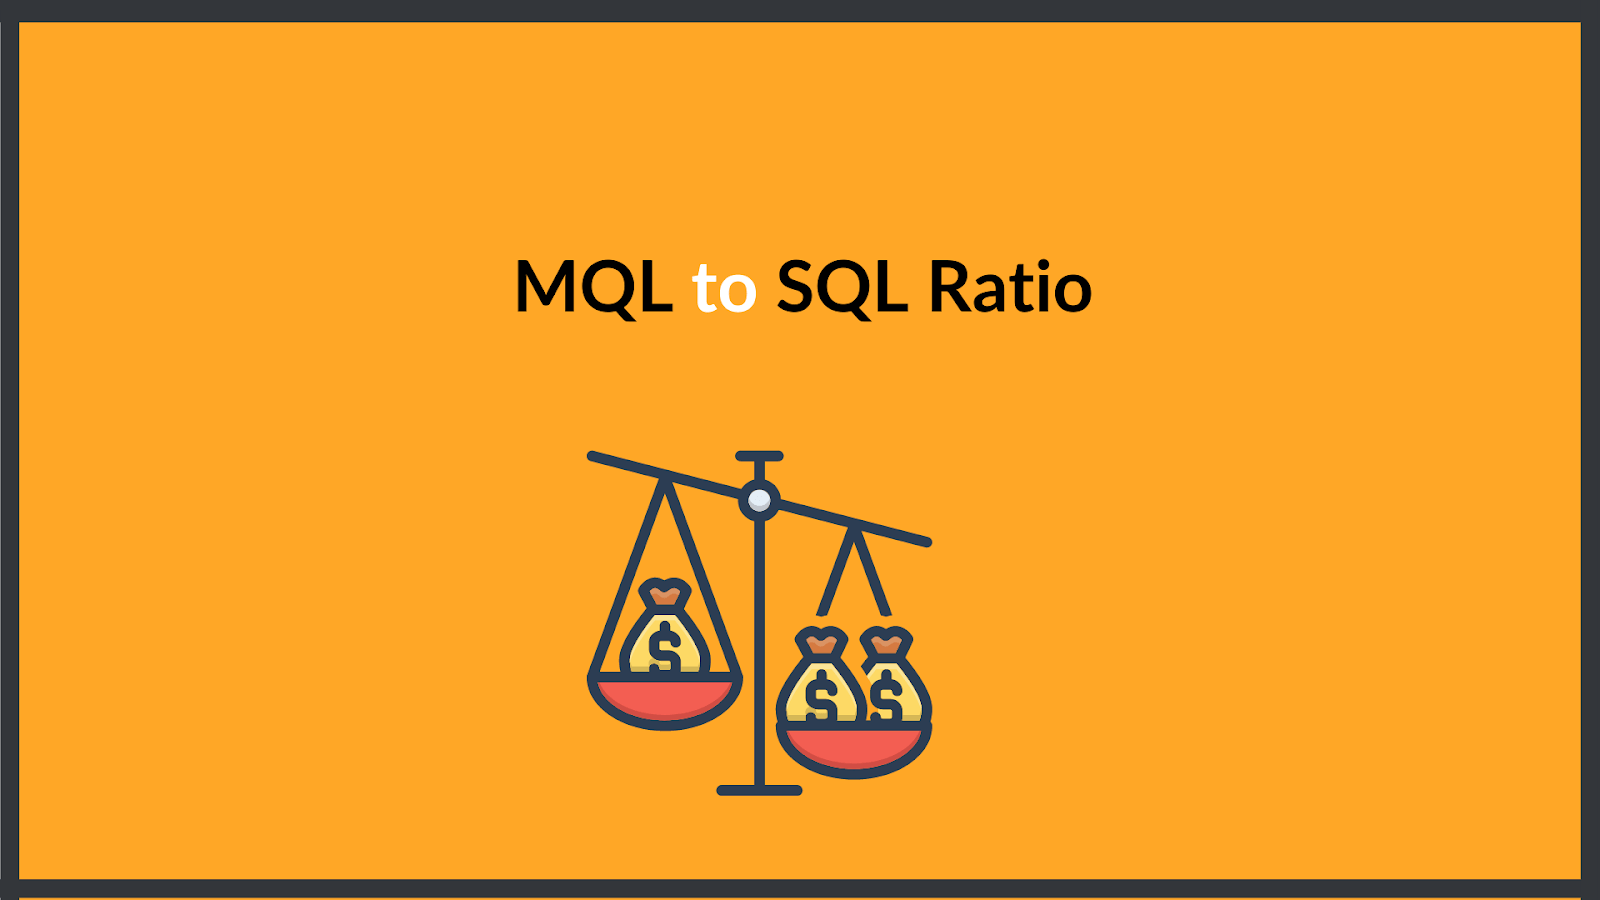 mql to sql ratio